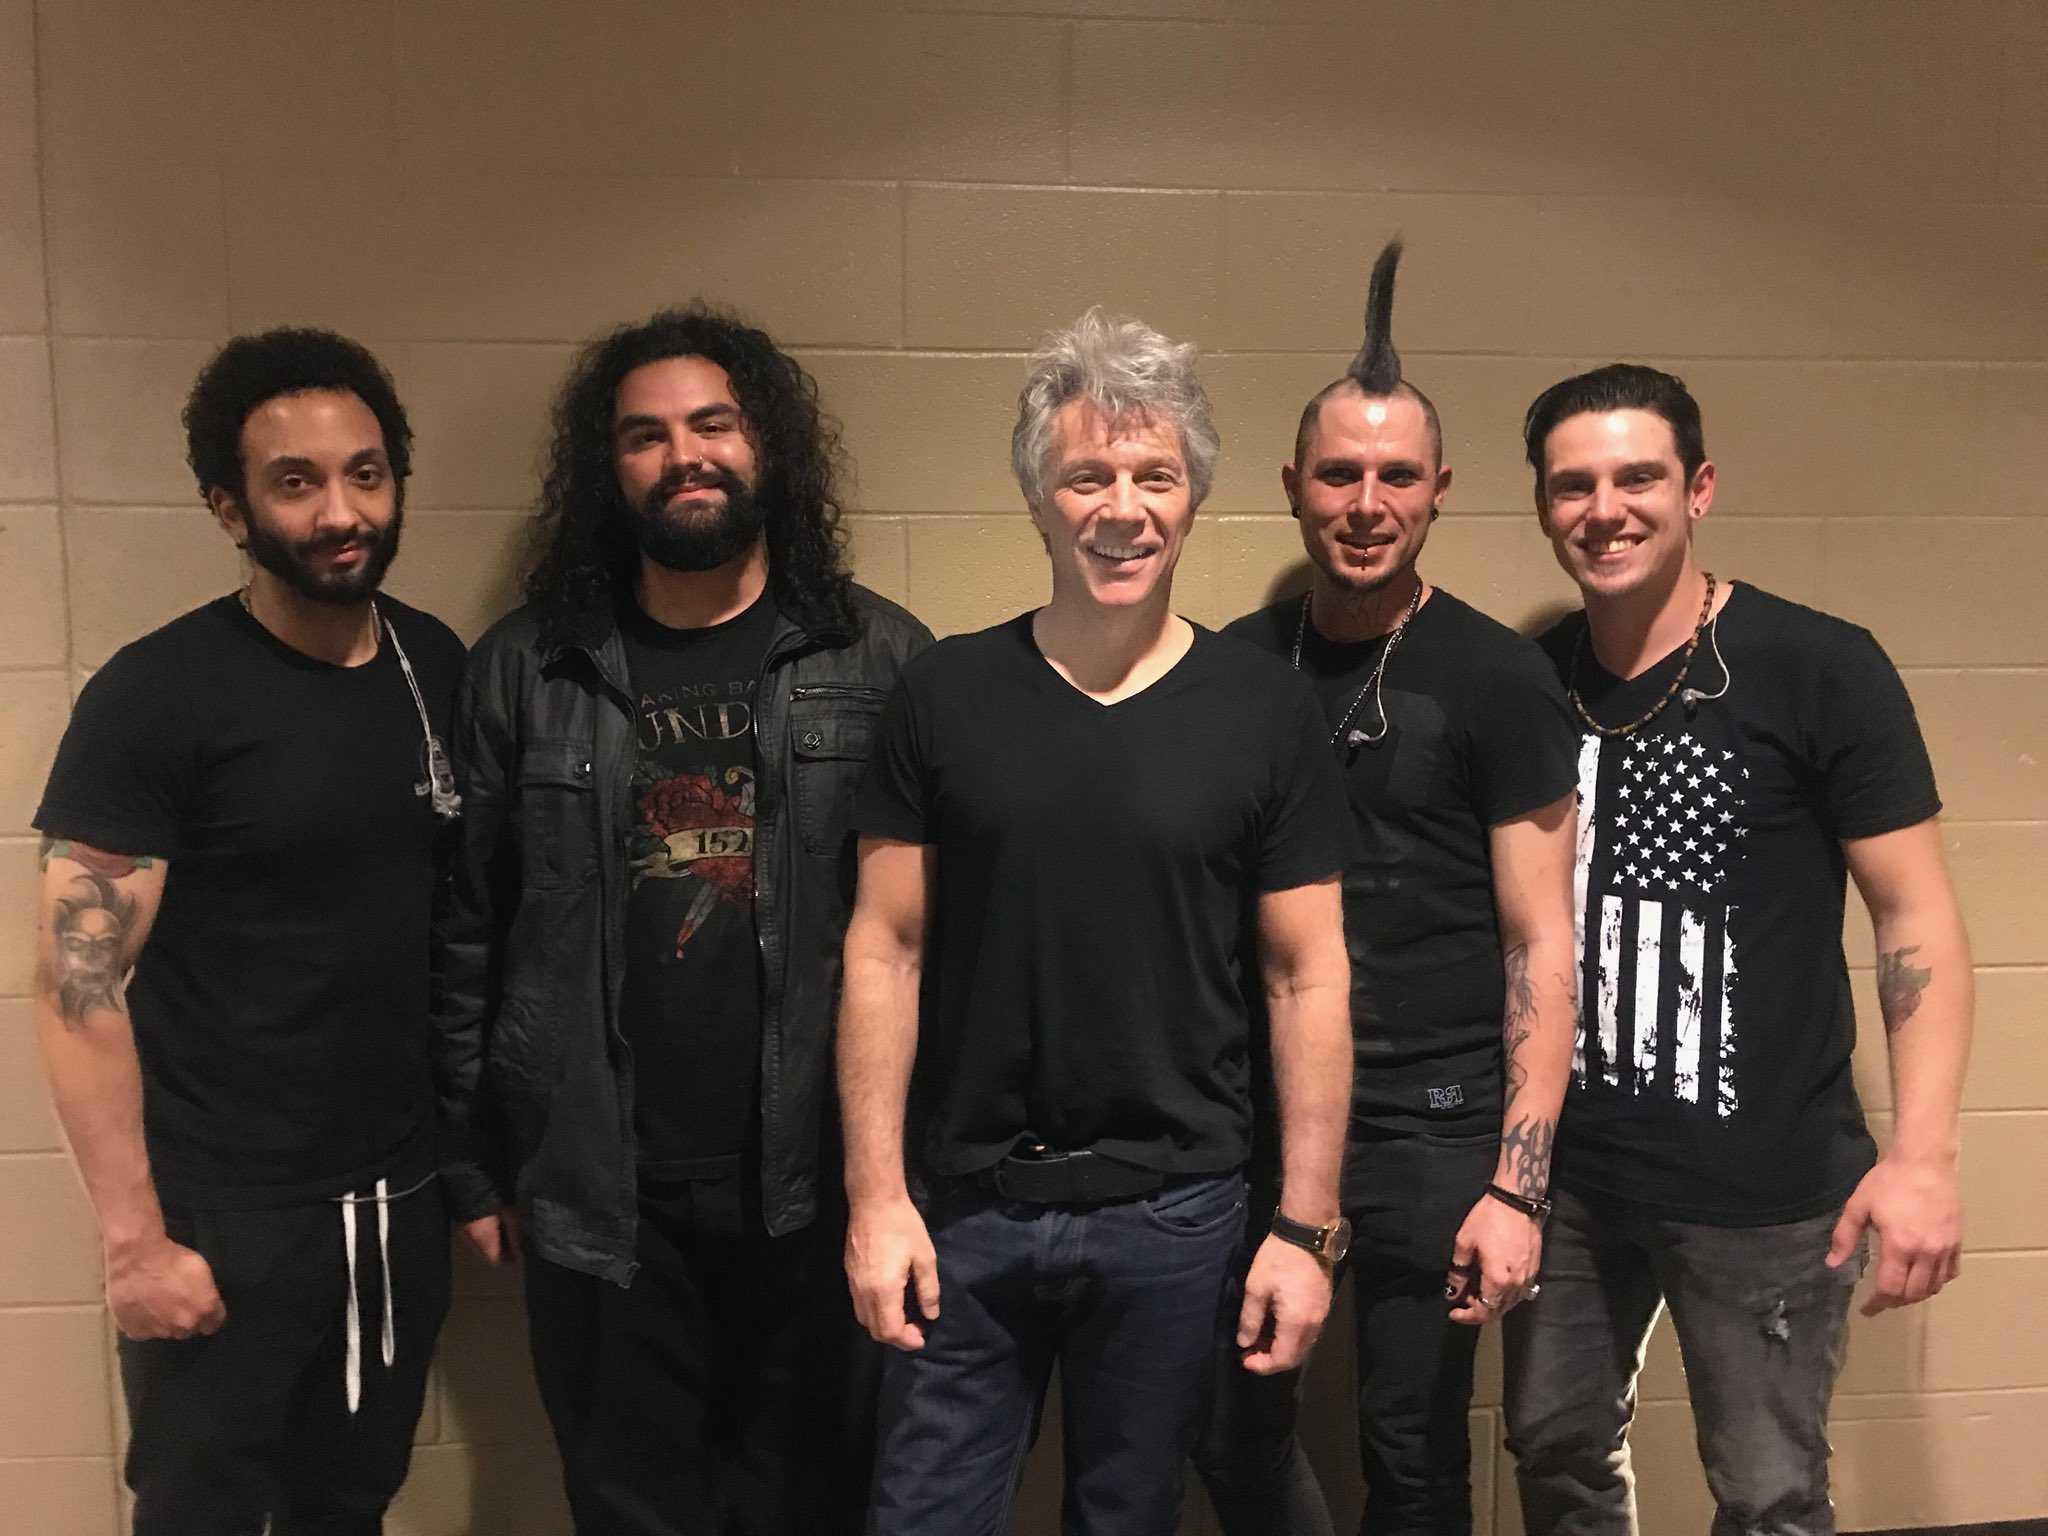 Who was in Houston with us last night?? JBJ with opening act, @holdonhollywood + setlist. #THINFStour https://t.co/zcJqcK9umt